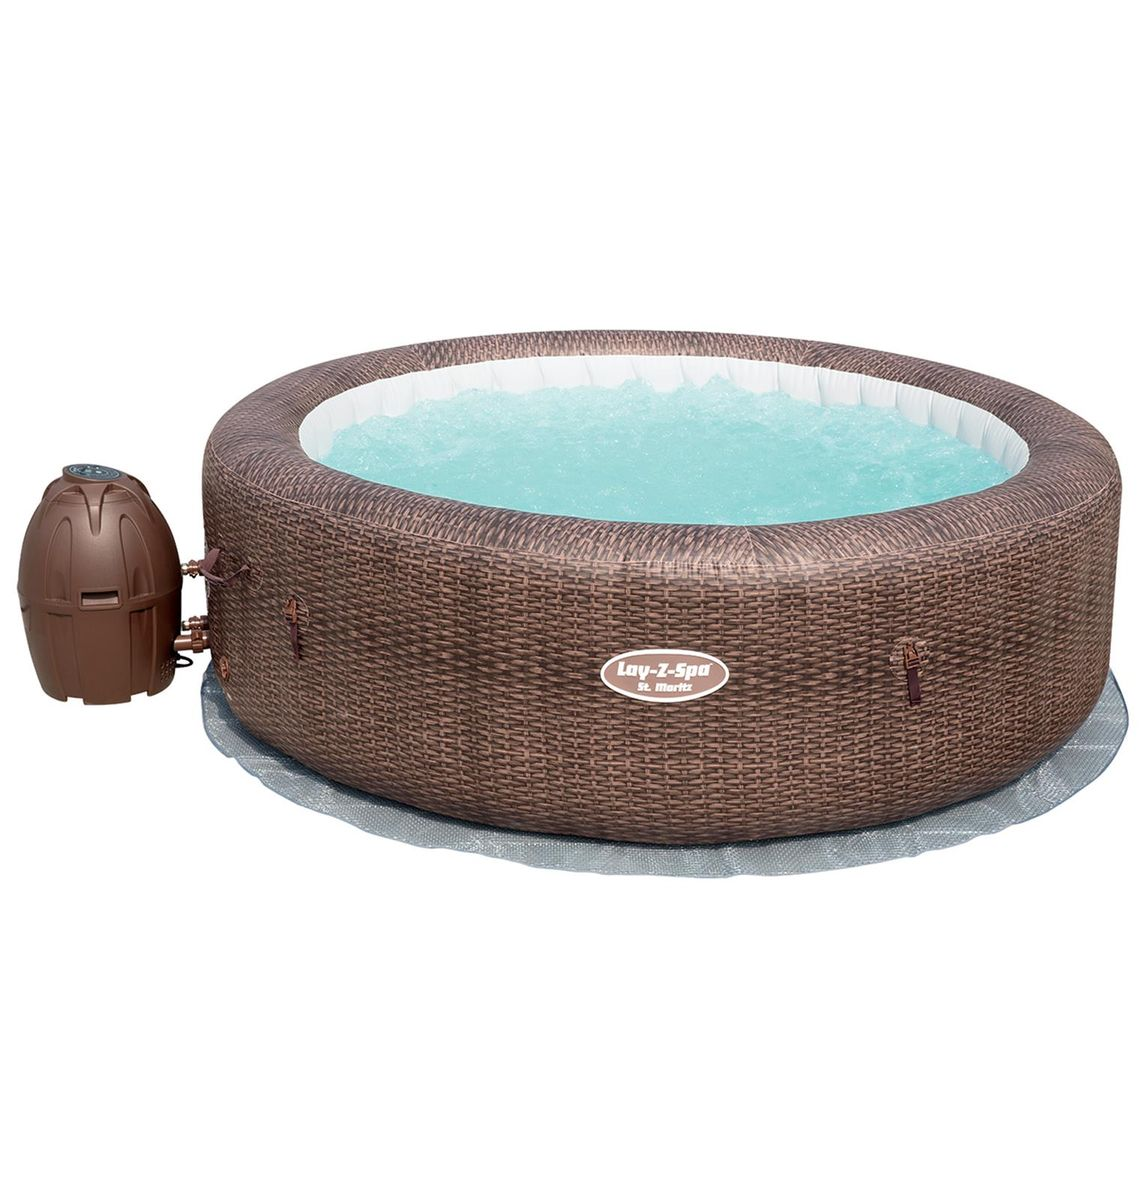 SPA GONFLABLE BESTWAY LAY-Z-SPA ST MORITZ 5-7 pers